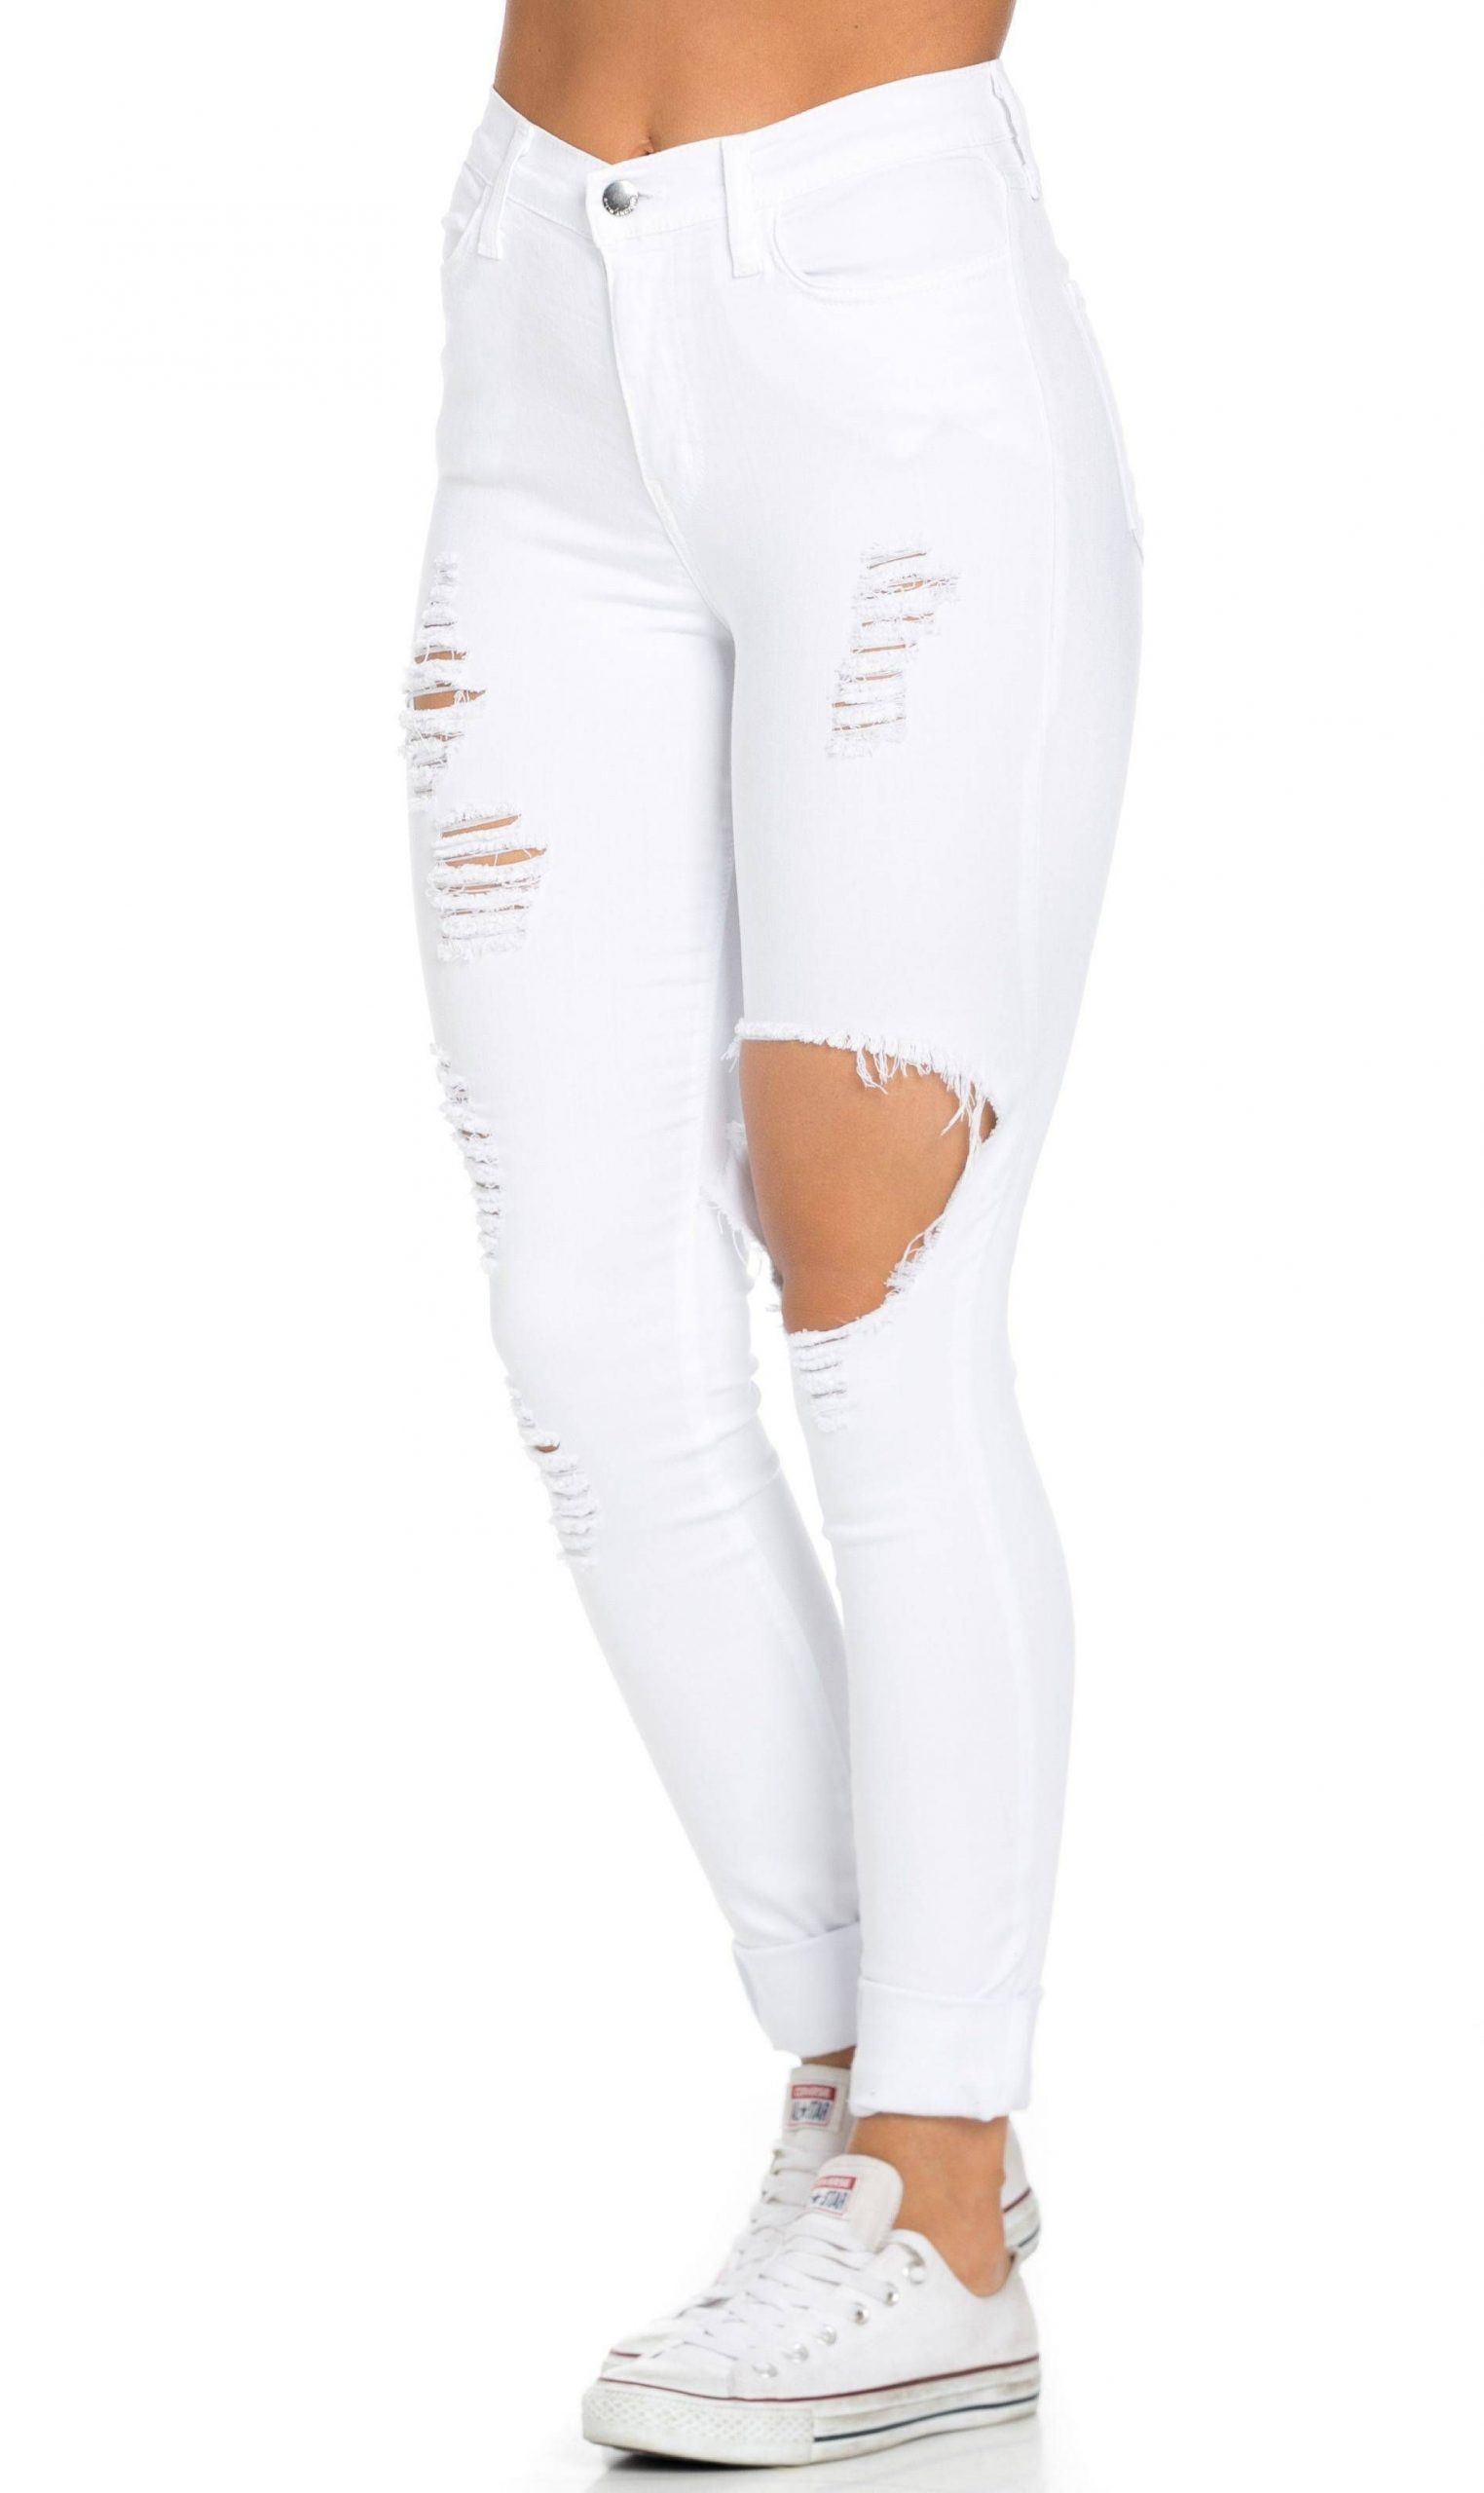 High Waisted Distressed Skinny Jeans in White (Plus Sizes Available)